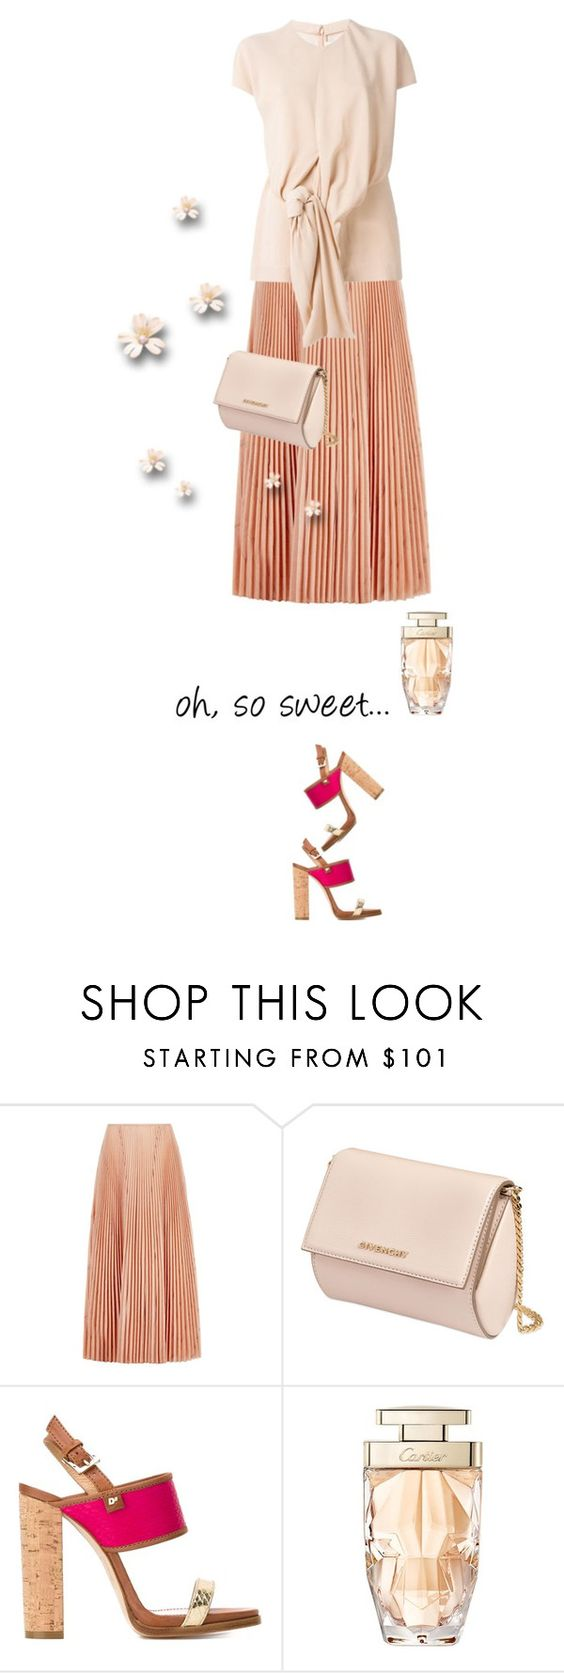 """""""so sweet.."""" by vinograd24 ❤ liked on Polyvore featuring Cédric Charlier, Marni, Givenchy, Dsquared2 and Cartier"""